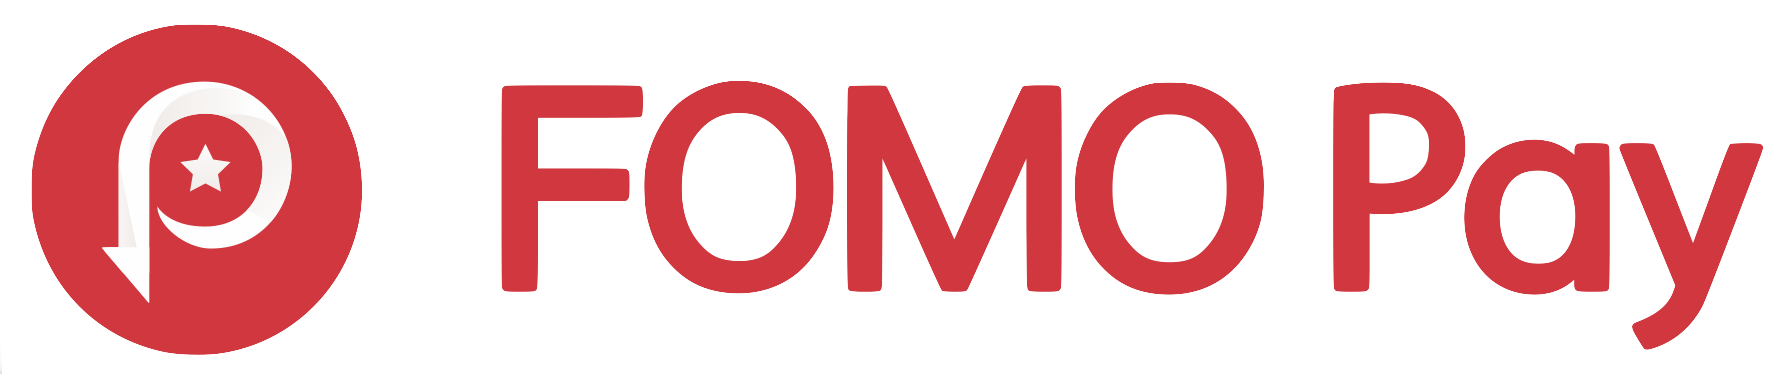 FOMO Pay Pte. Ltd.